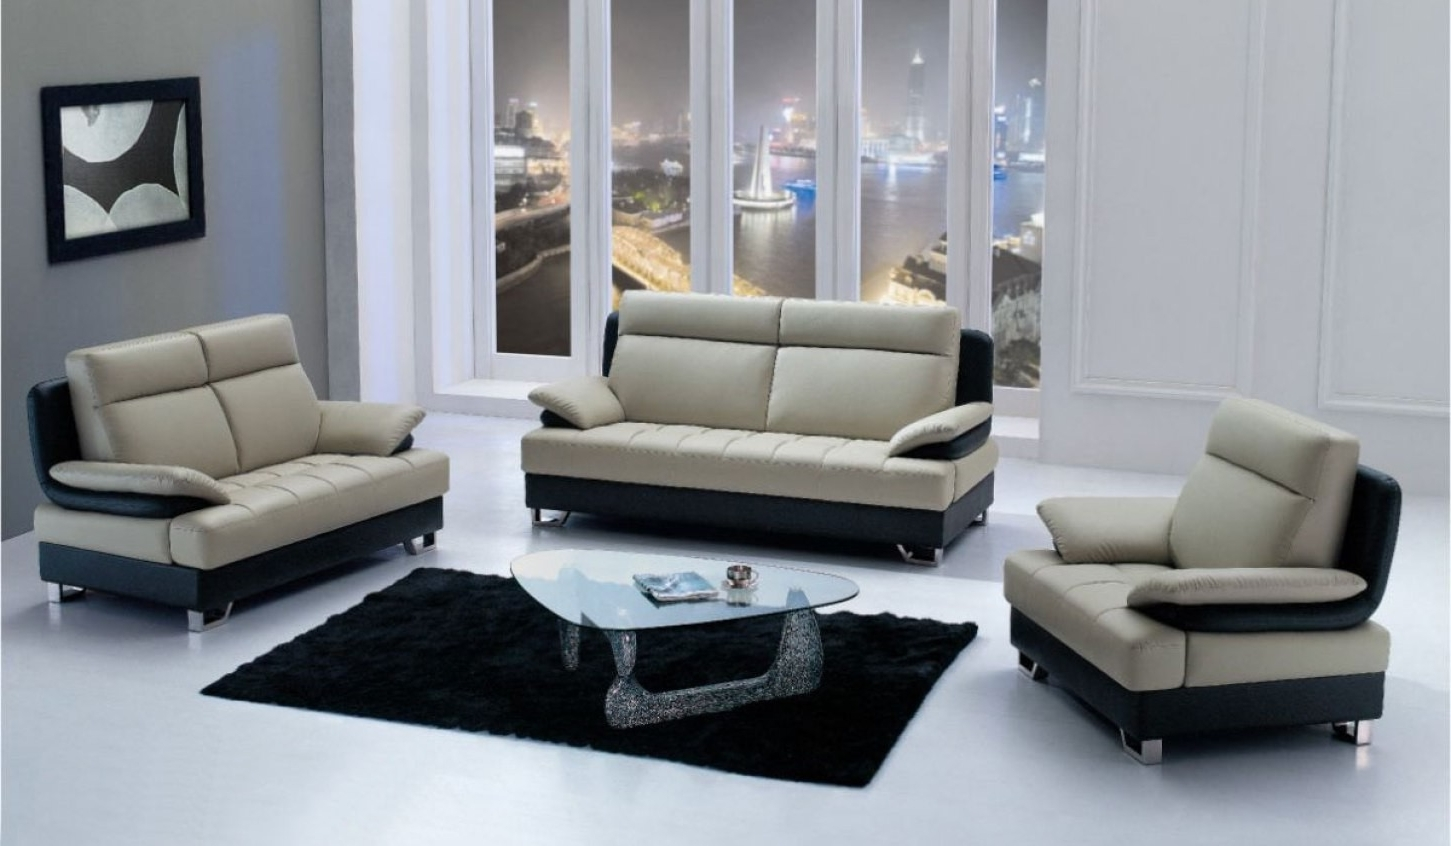 Best And Newest Sectional Sofas At Edmonton With Sectional Sofas Edmonton Costco Chesterfield Sofa Finesse (View 4 of 15)